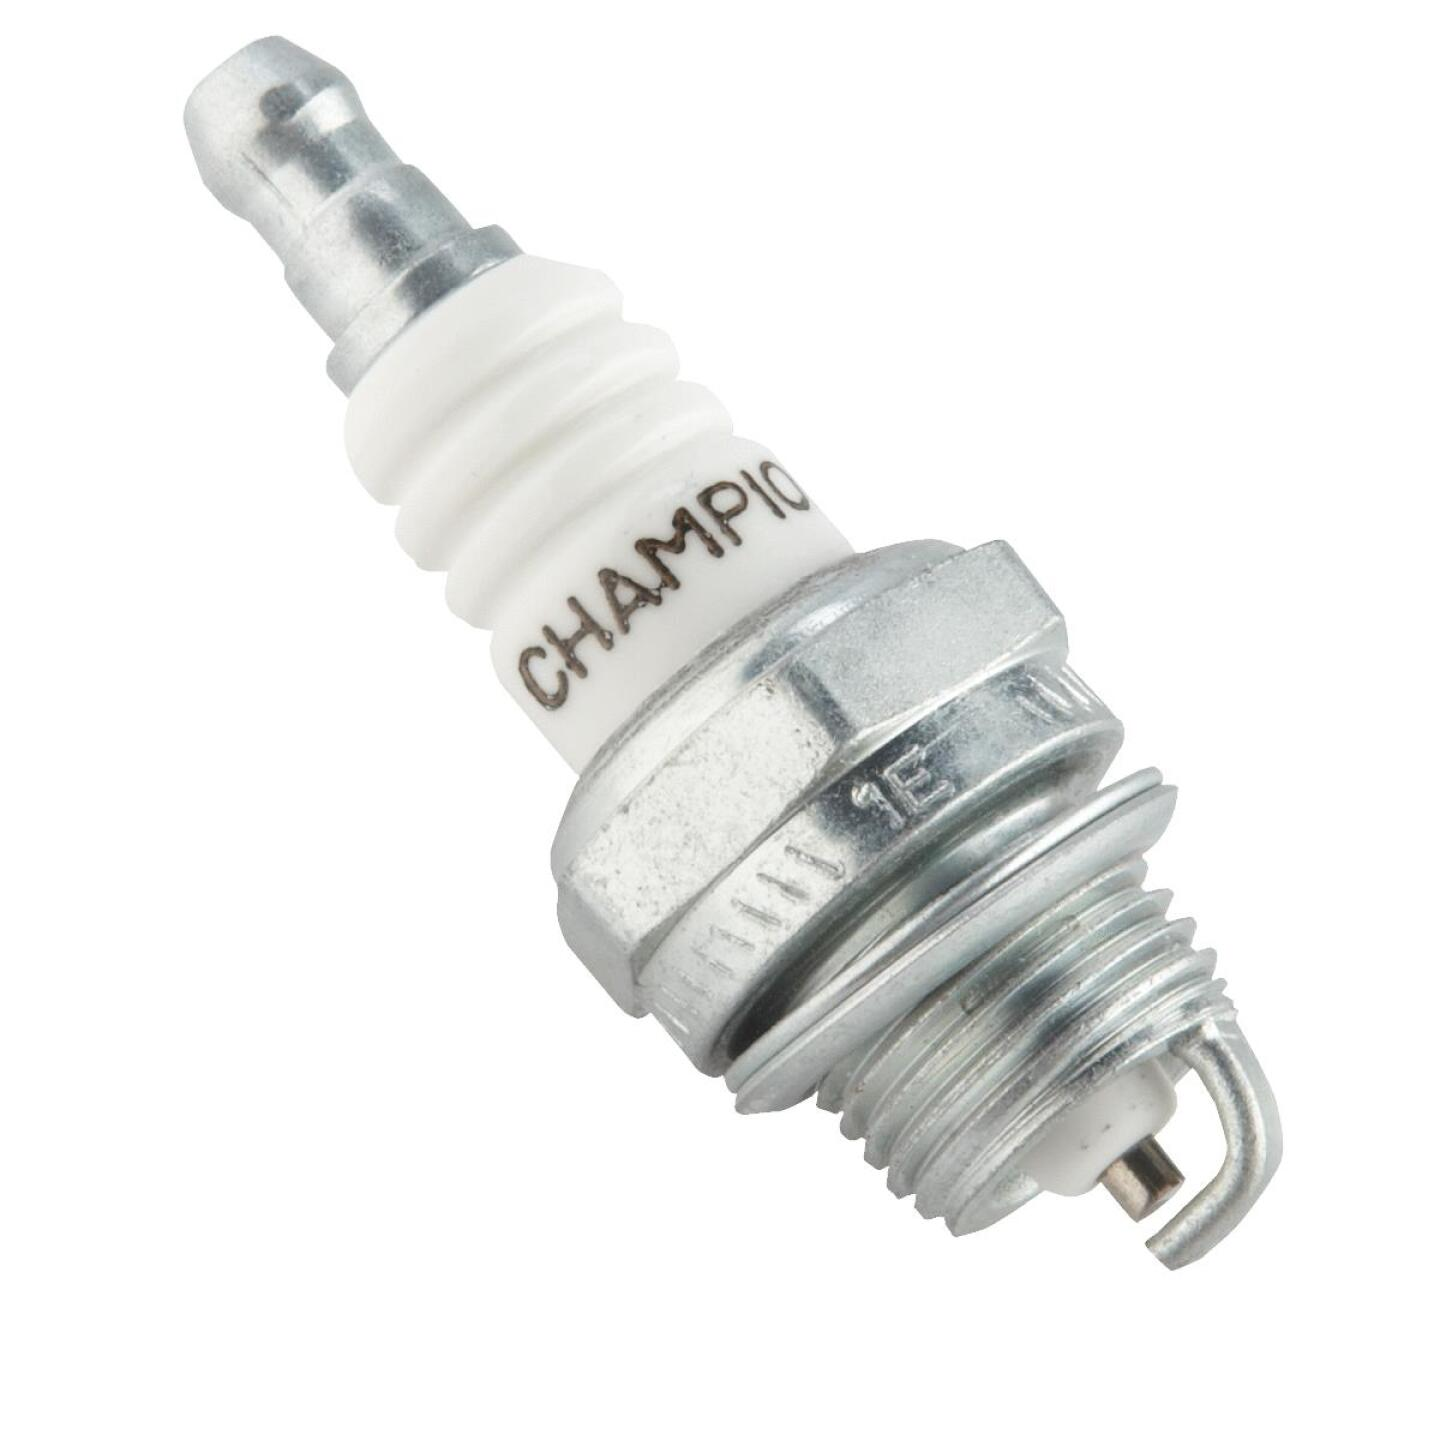 Champion CJ8Y Copper Plus Small Engine Spark Plug Image 1